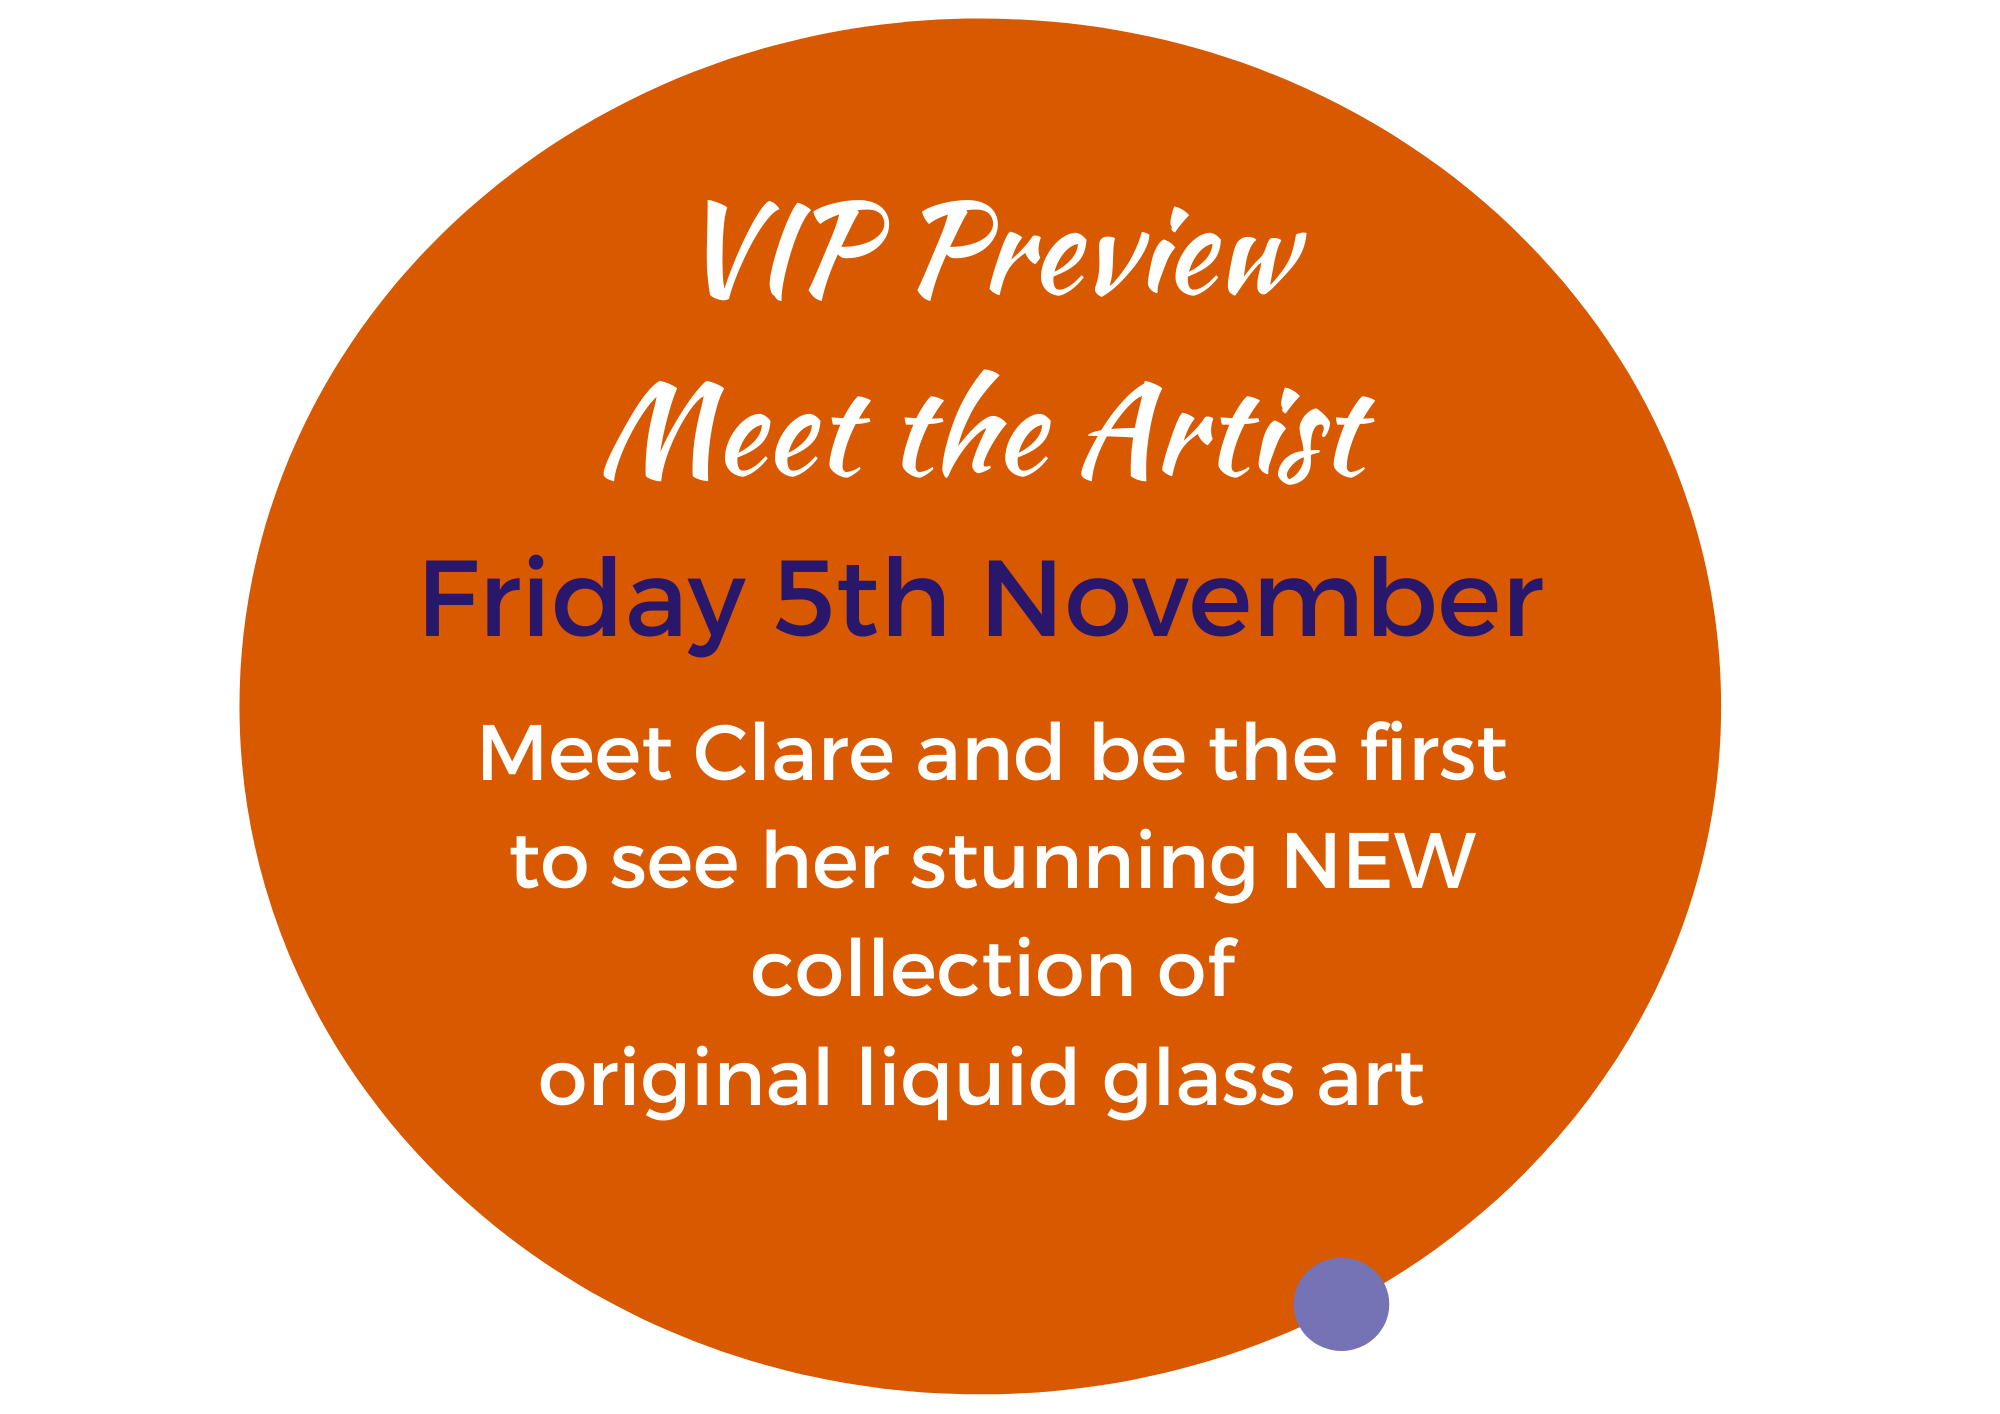 """orange circle which reads """"VIP Preview with Clare Wright/ Friday 5th November Meet Clare and be the first to see her stunning new collection of liquid glass art"""